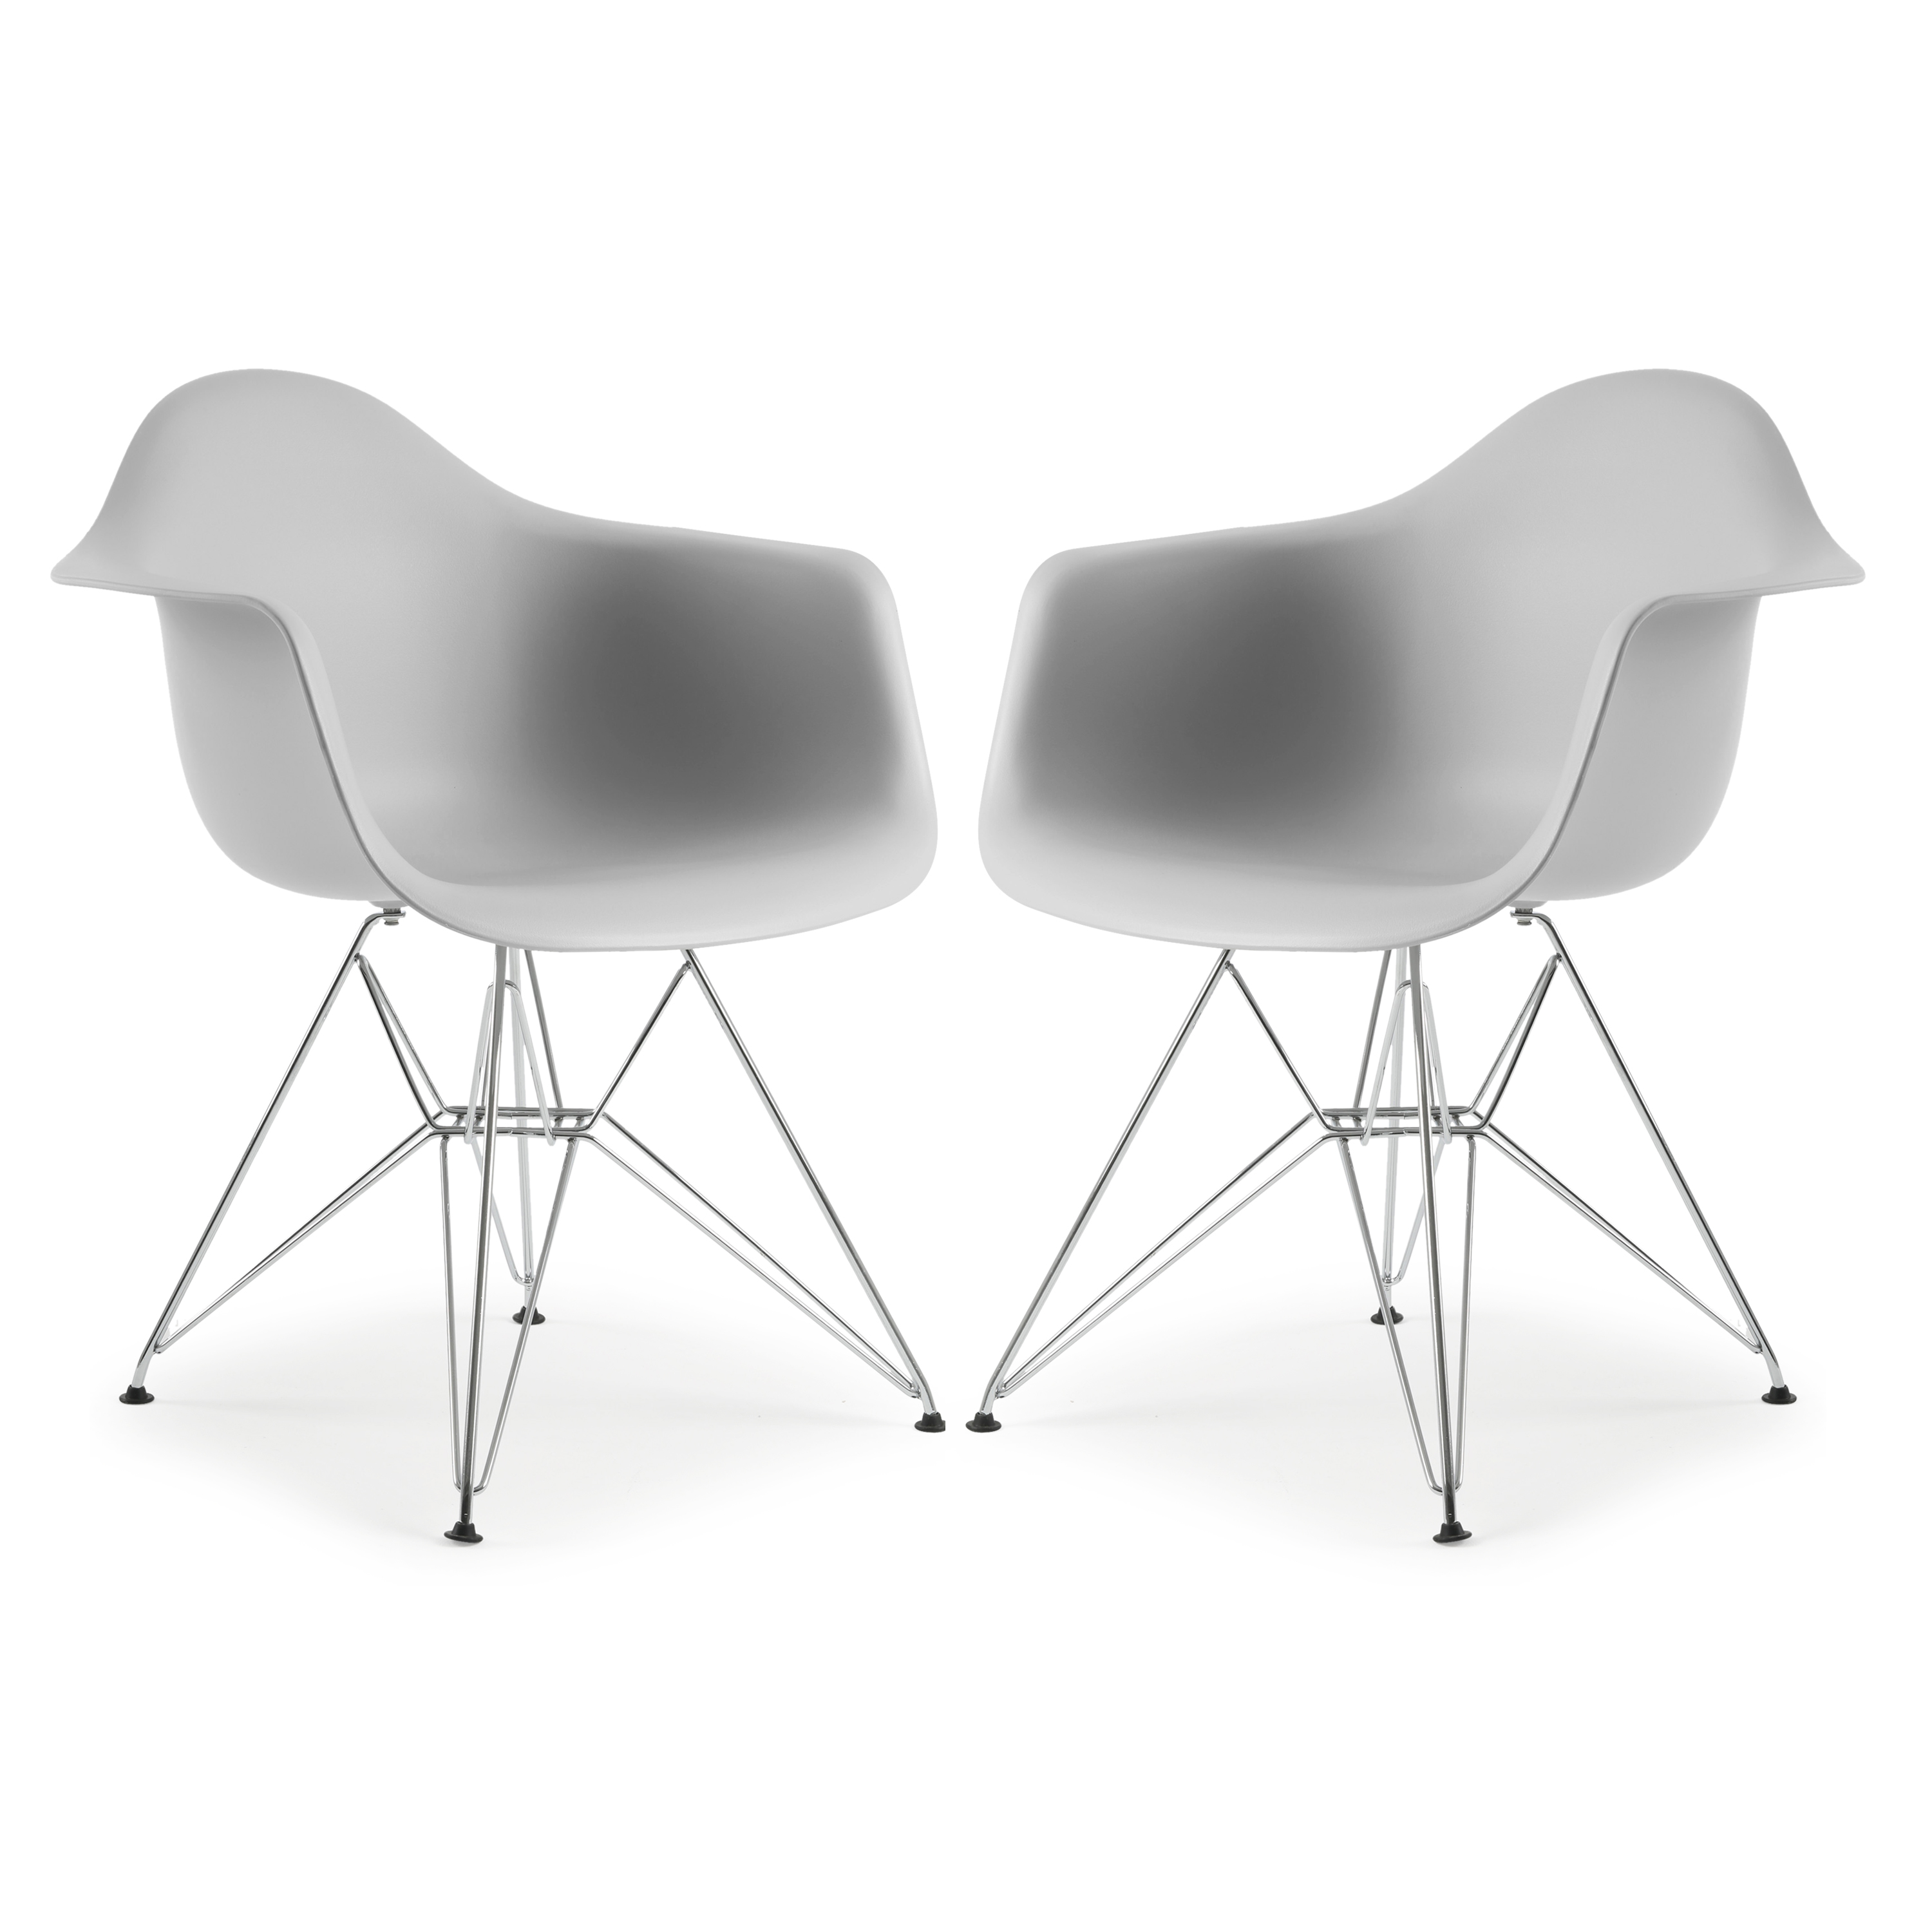 Poly and Bark Padget Arm Chair in White (Set of 2)